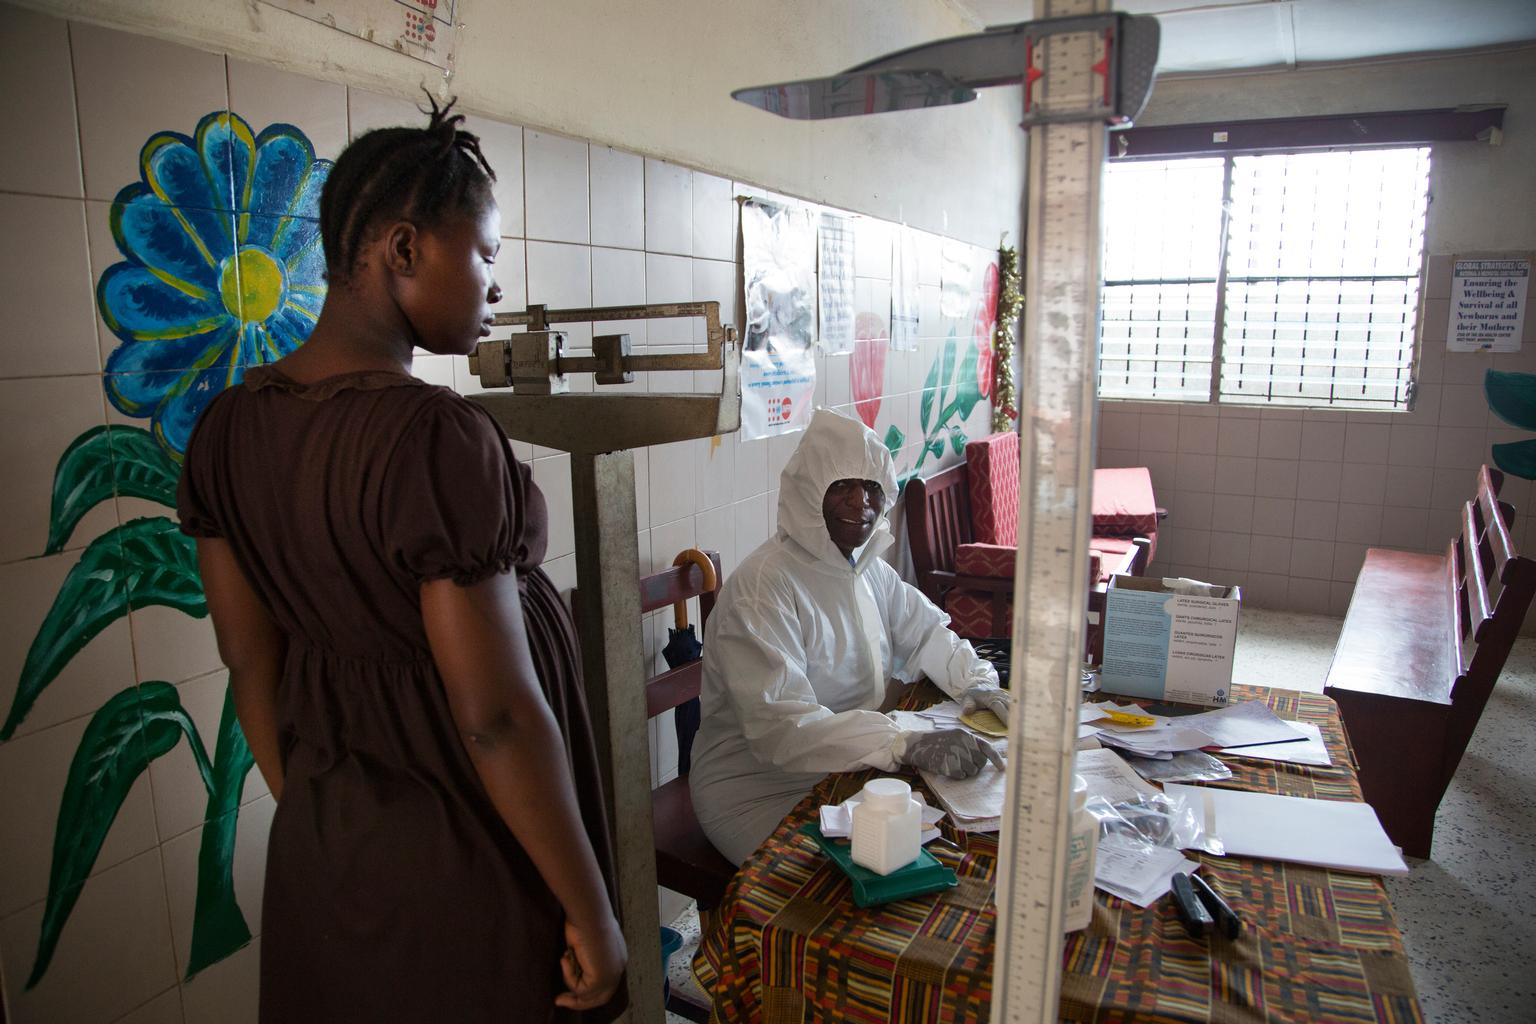 A health worker wearing personal protective equipment conducts a routine antenatal examination of a pregnant woman, at a healthcare facility in Monrovia.